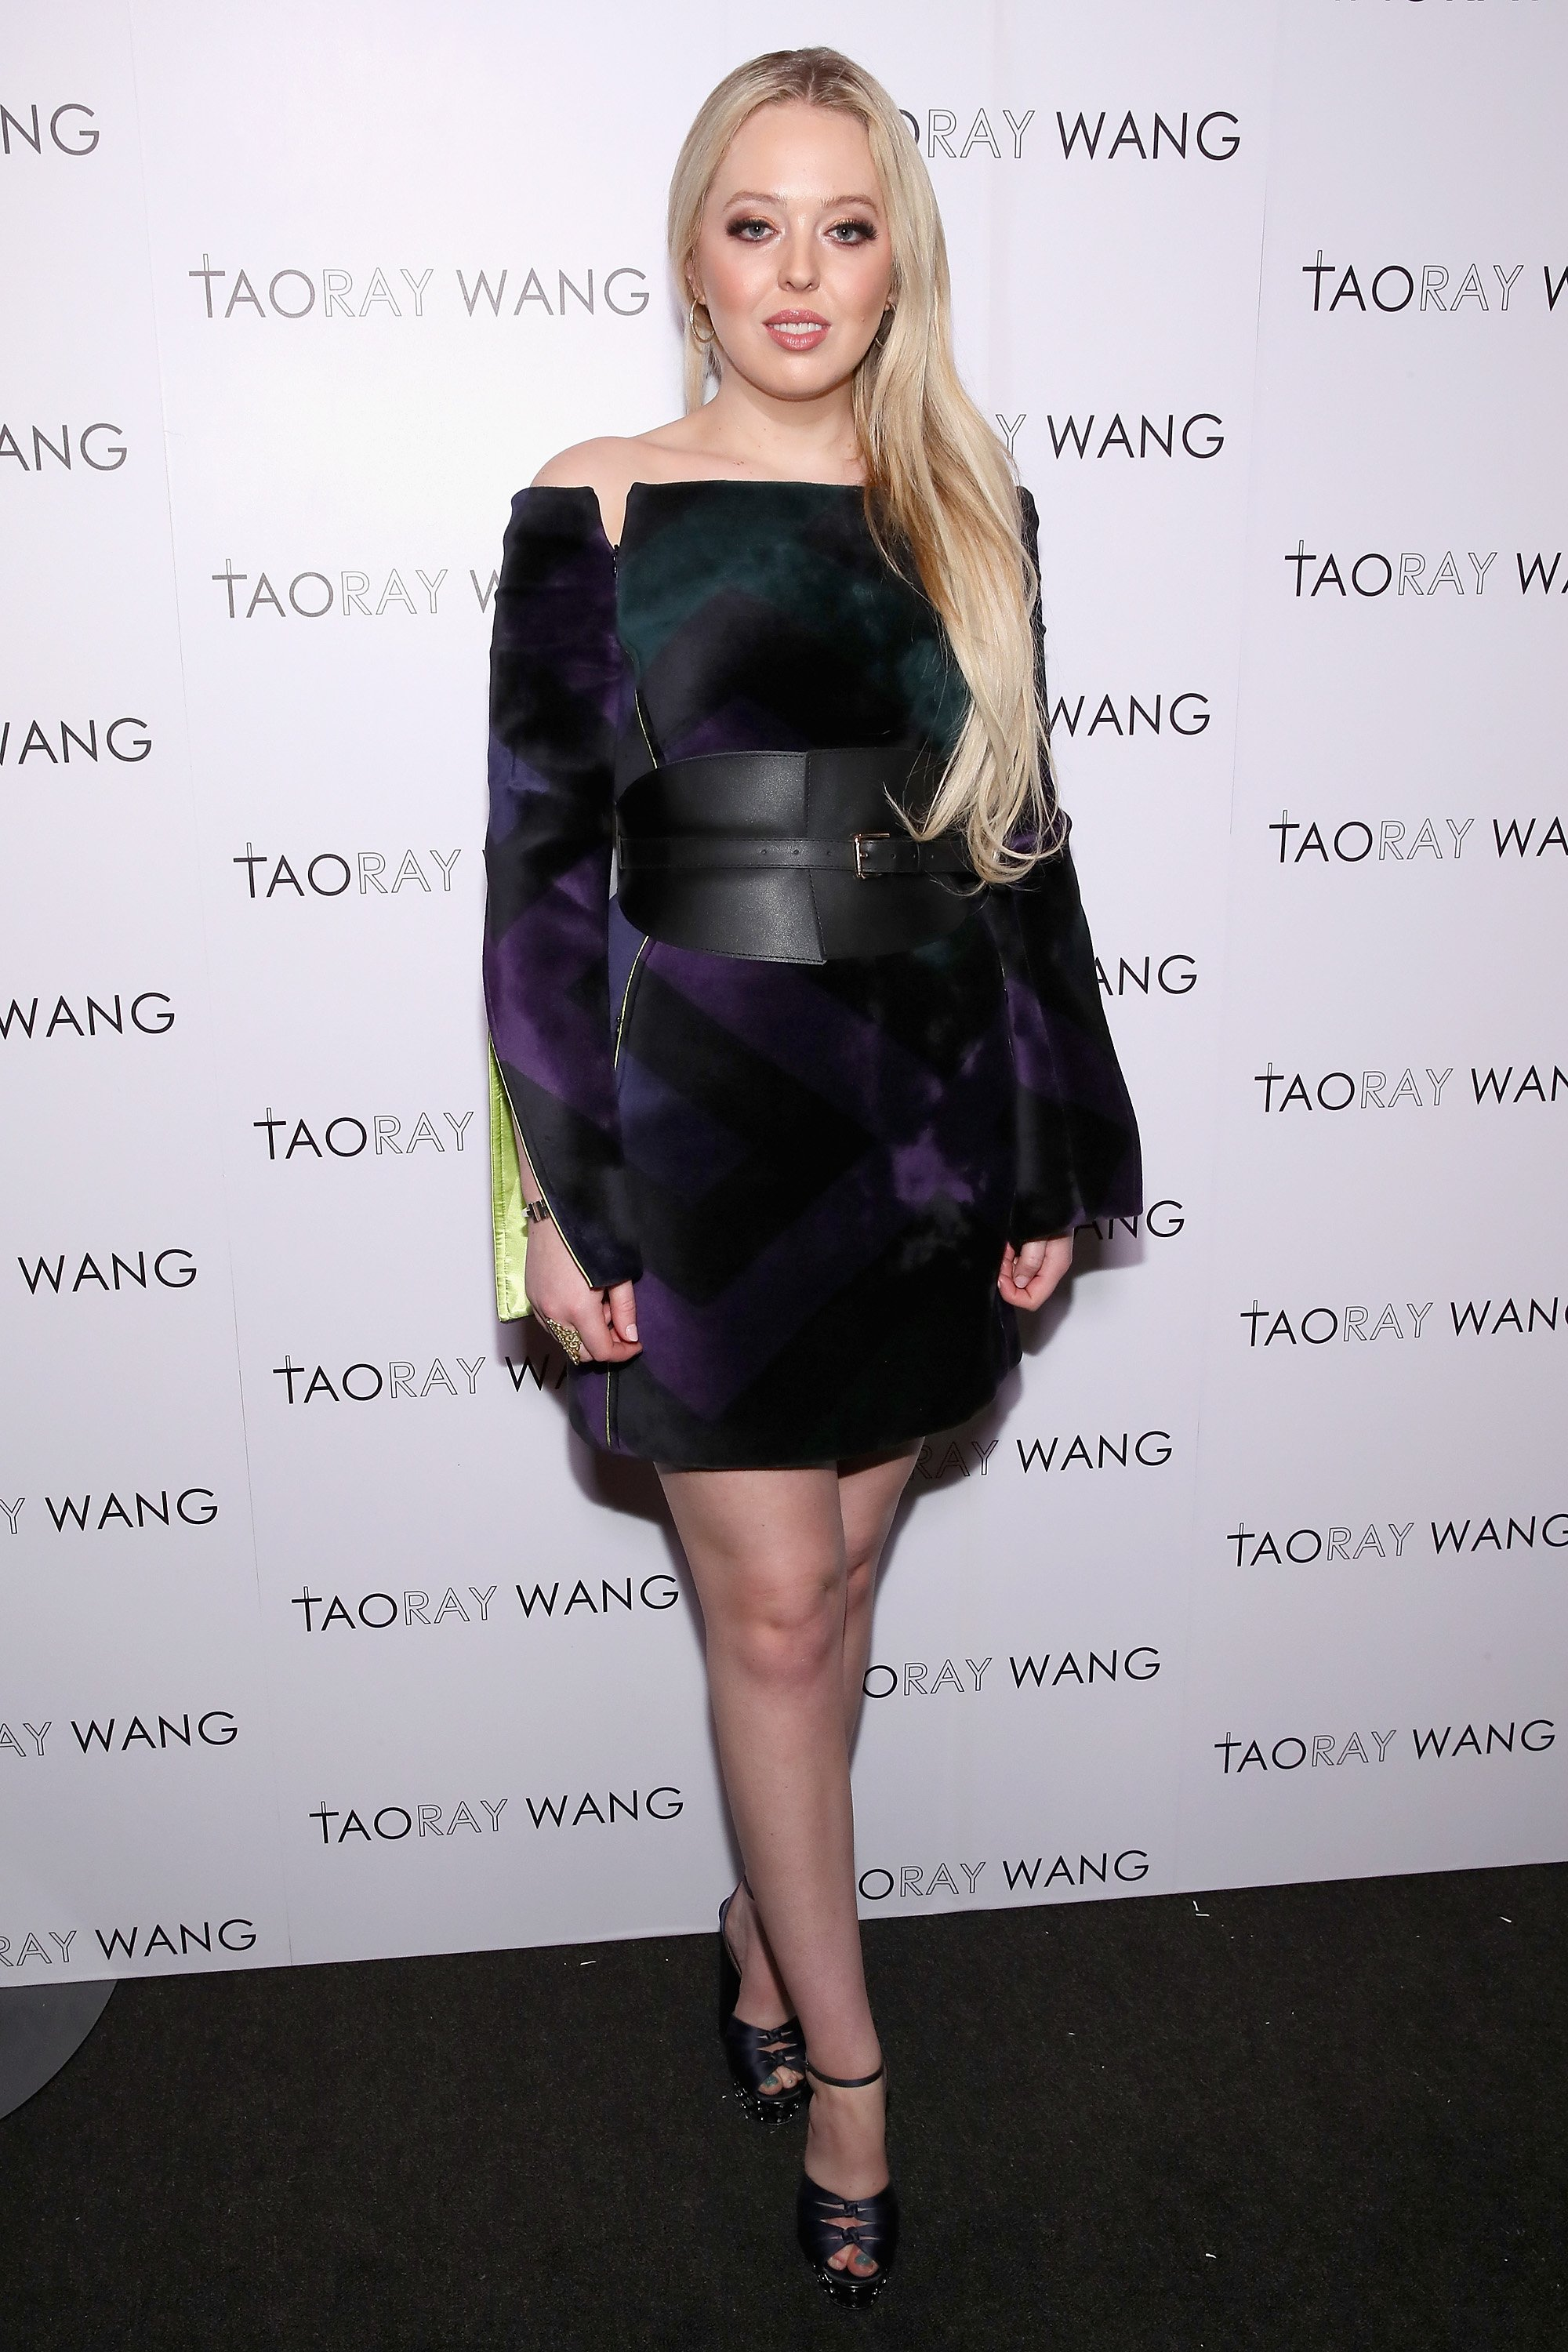 Tiffany Trump at the New York Fashion Week held at Spring Studios on February 9, 2019 in New York City   Photo: GettyImages